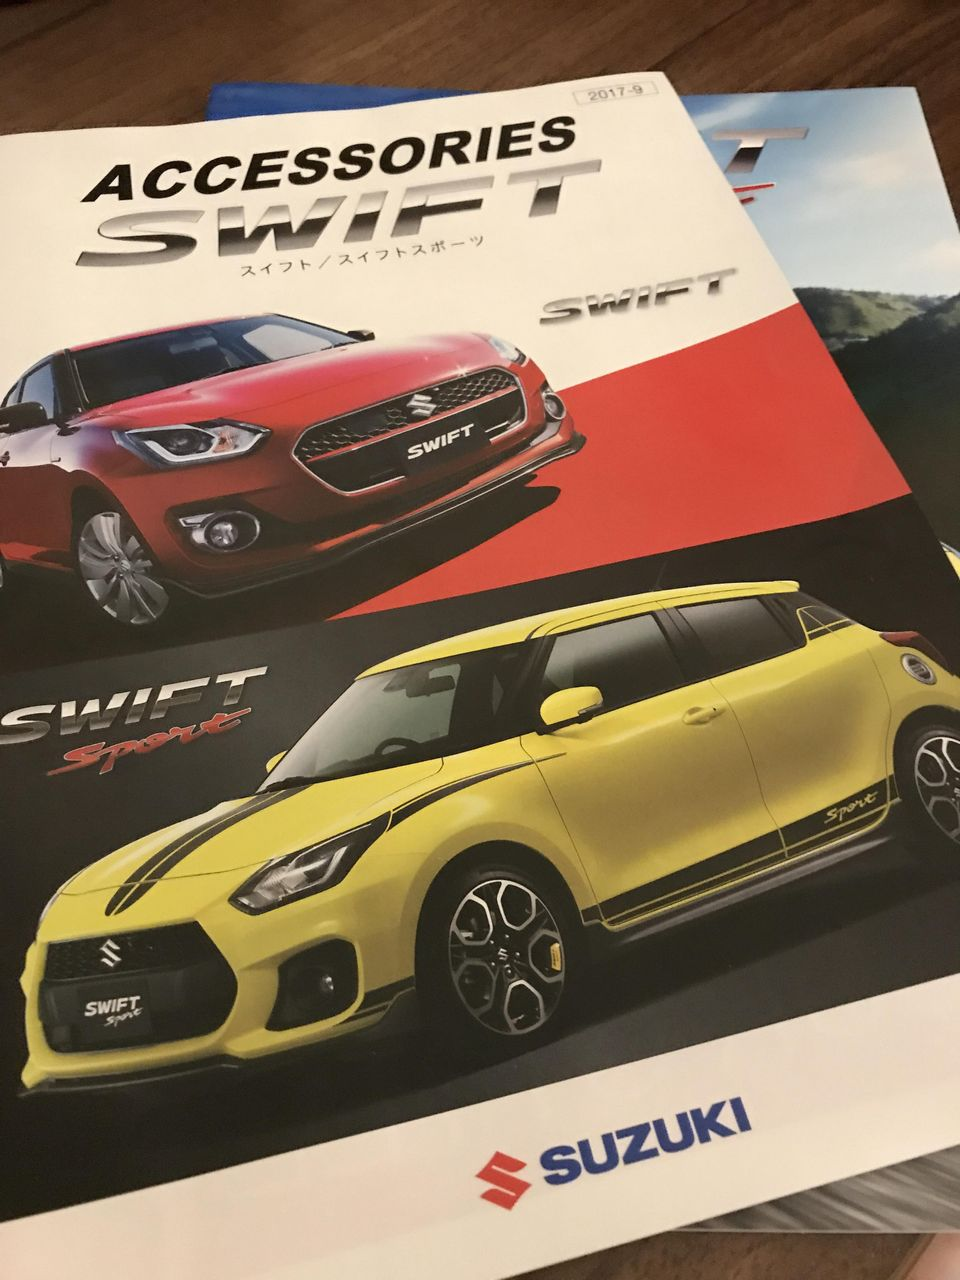 2018 Suzuki Swift Sport accessories brochure